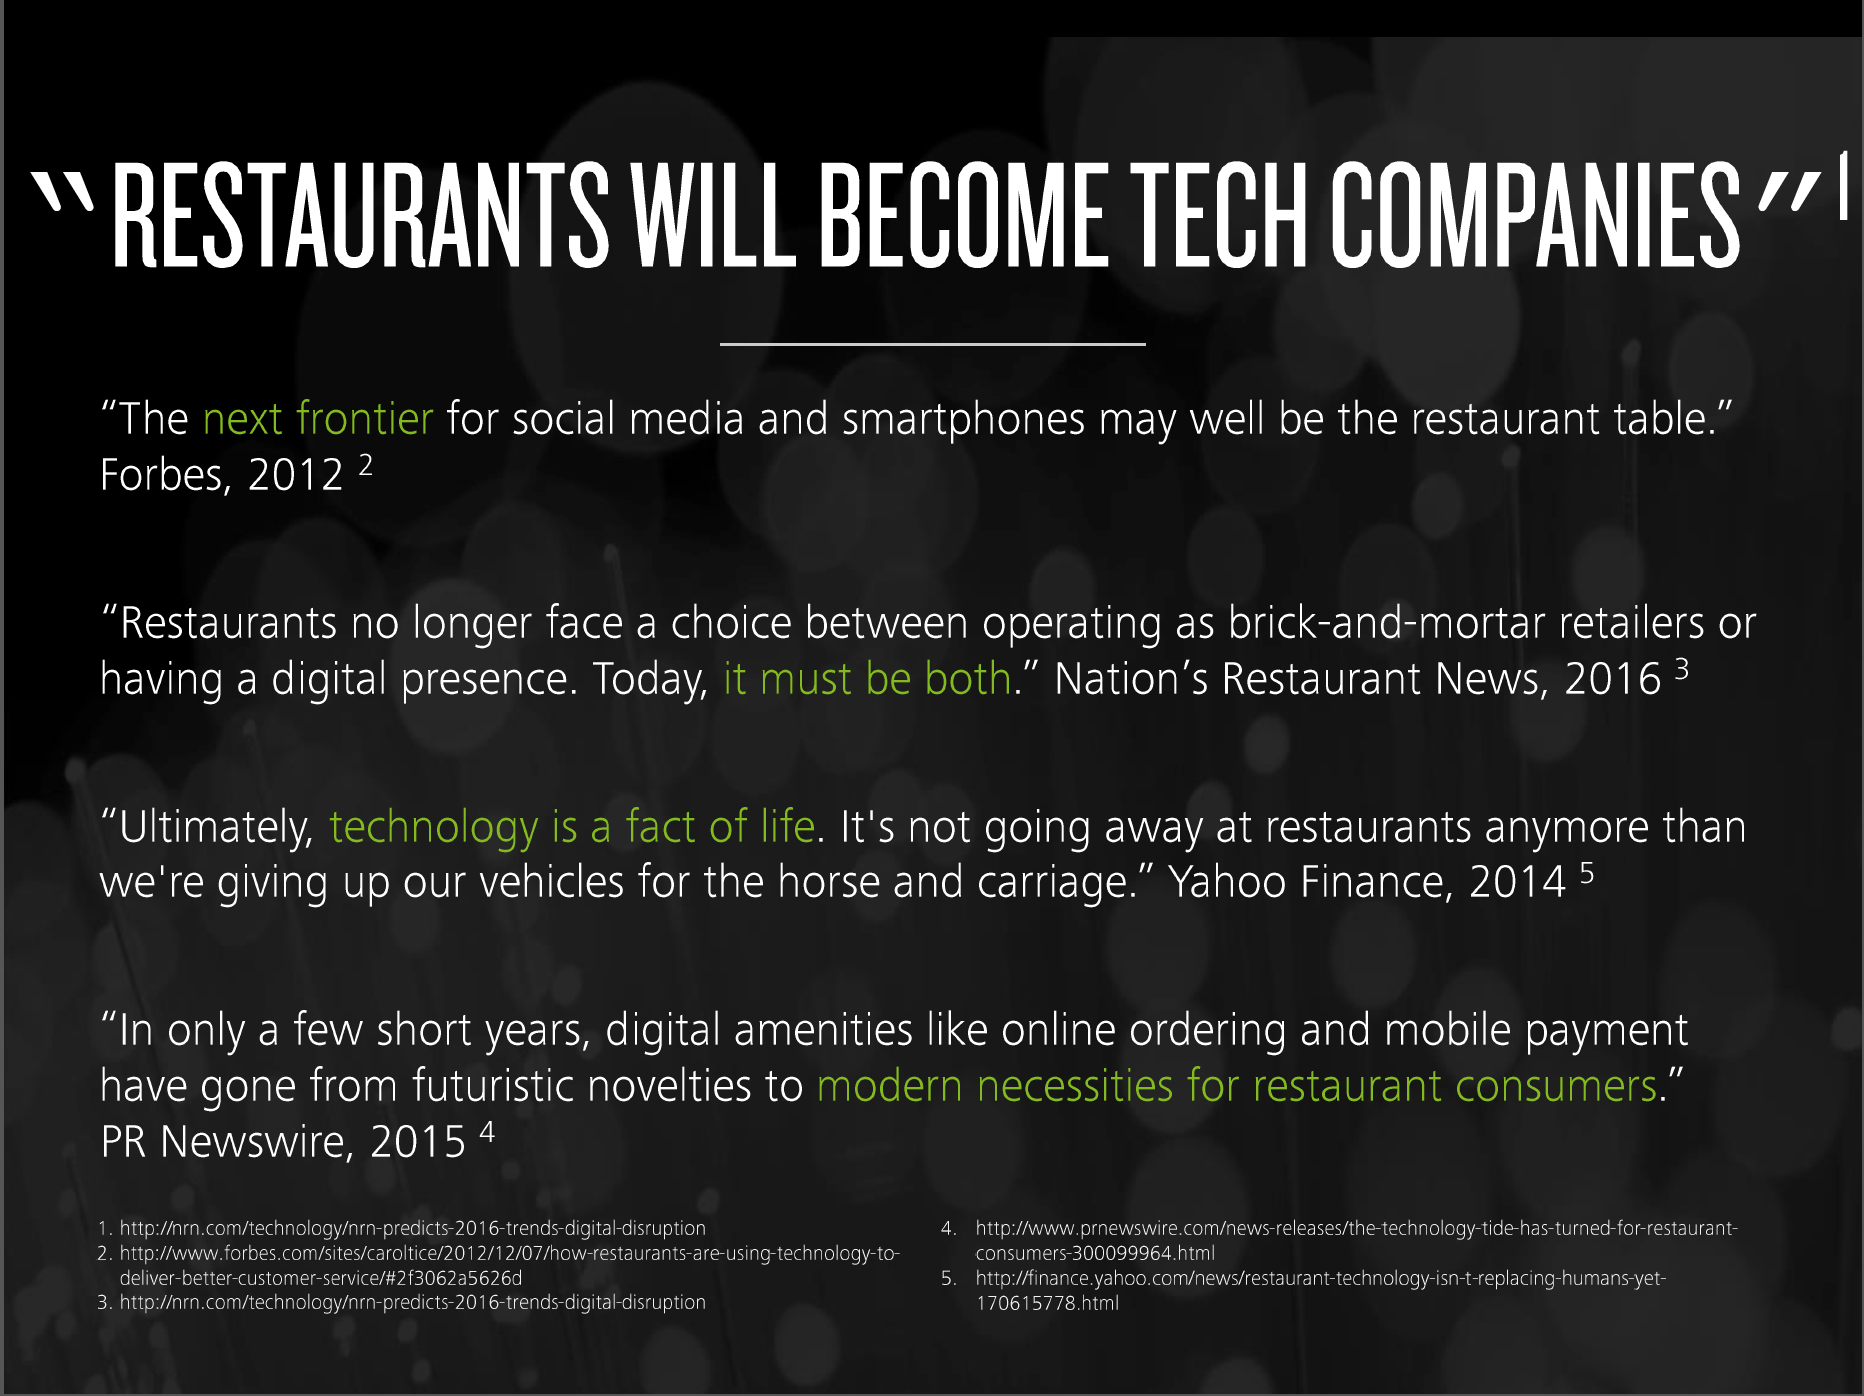 100 amazing restaurant software apps you need to know source going digital strategies for creating competitive advantage in restaurant and hospitality companies deloitte 2016 fandeluxe Image collections